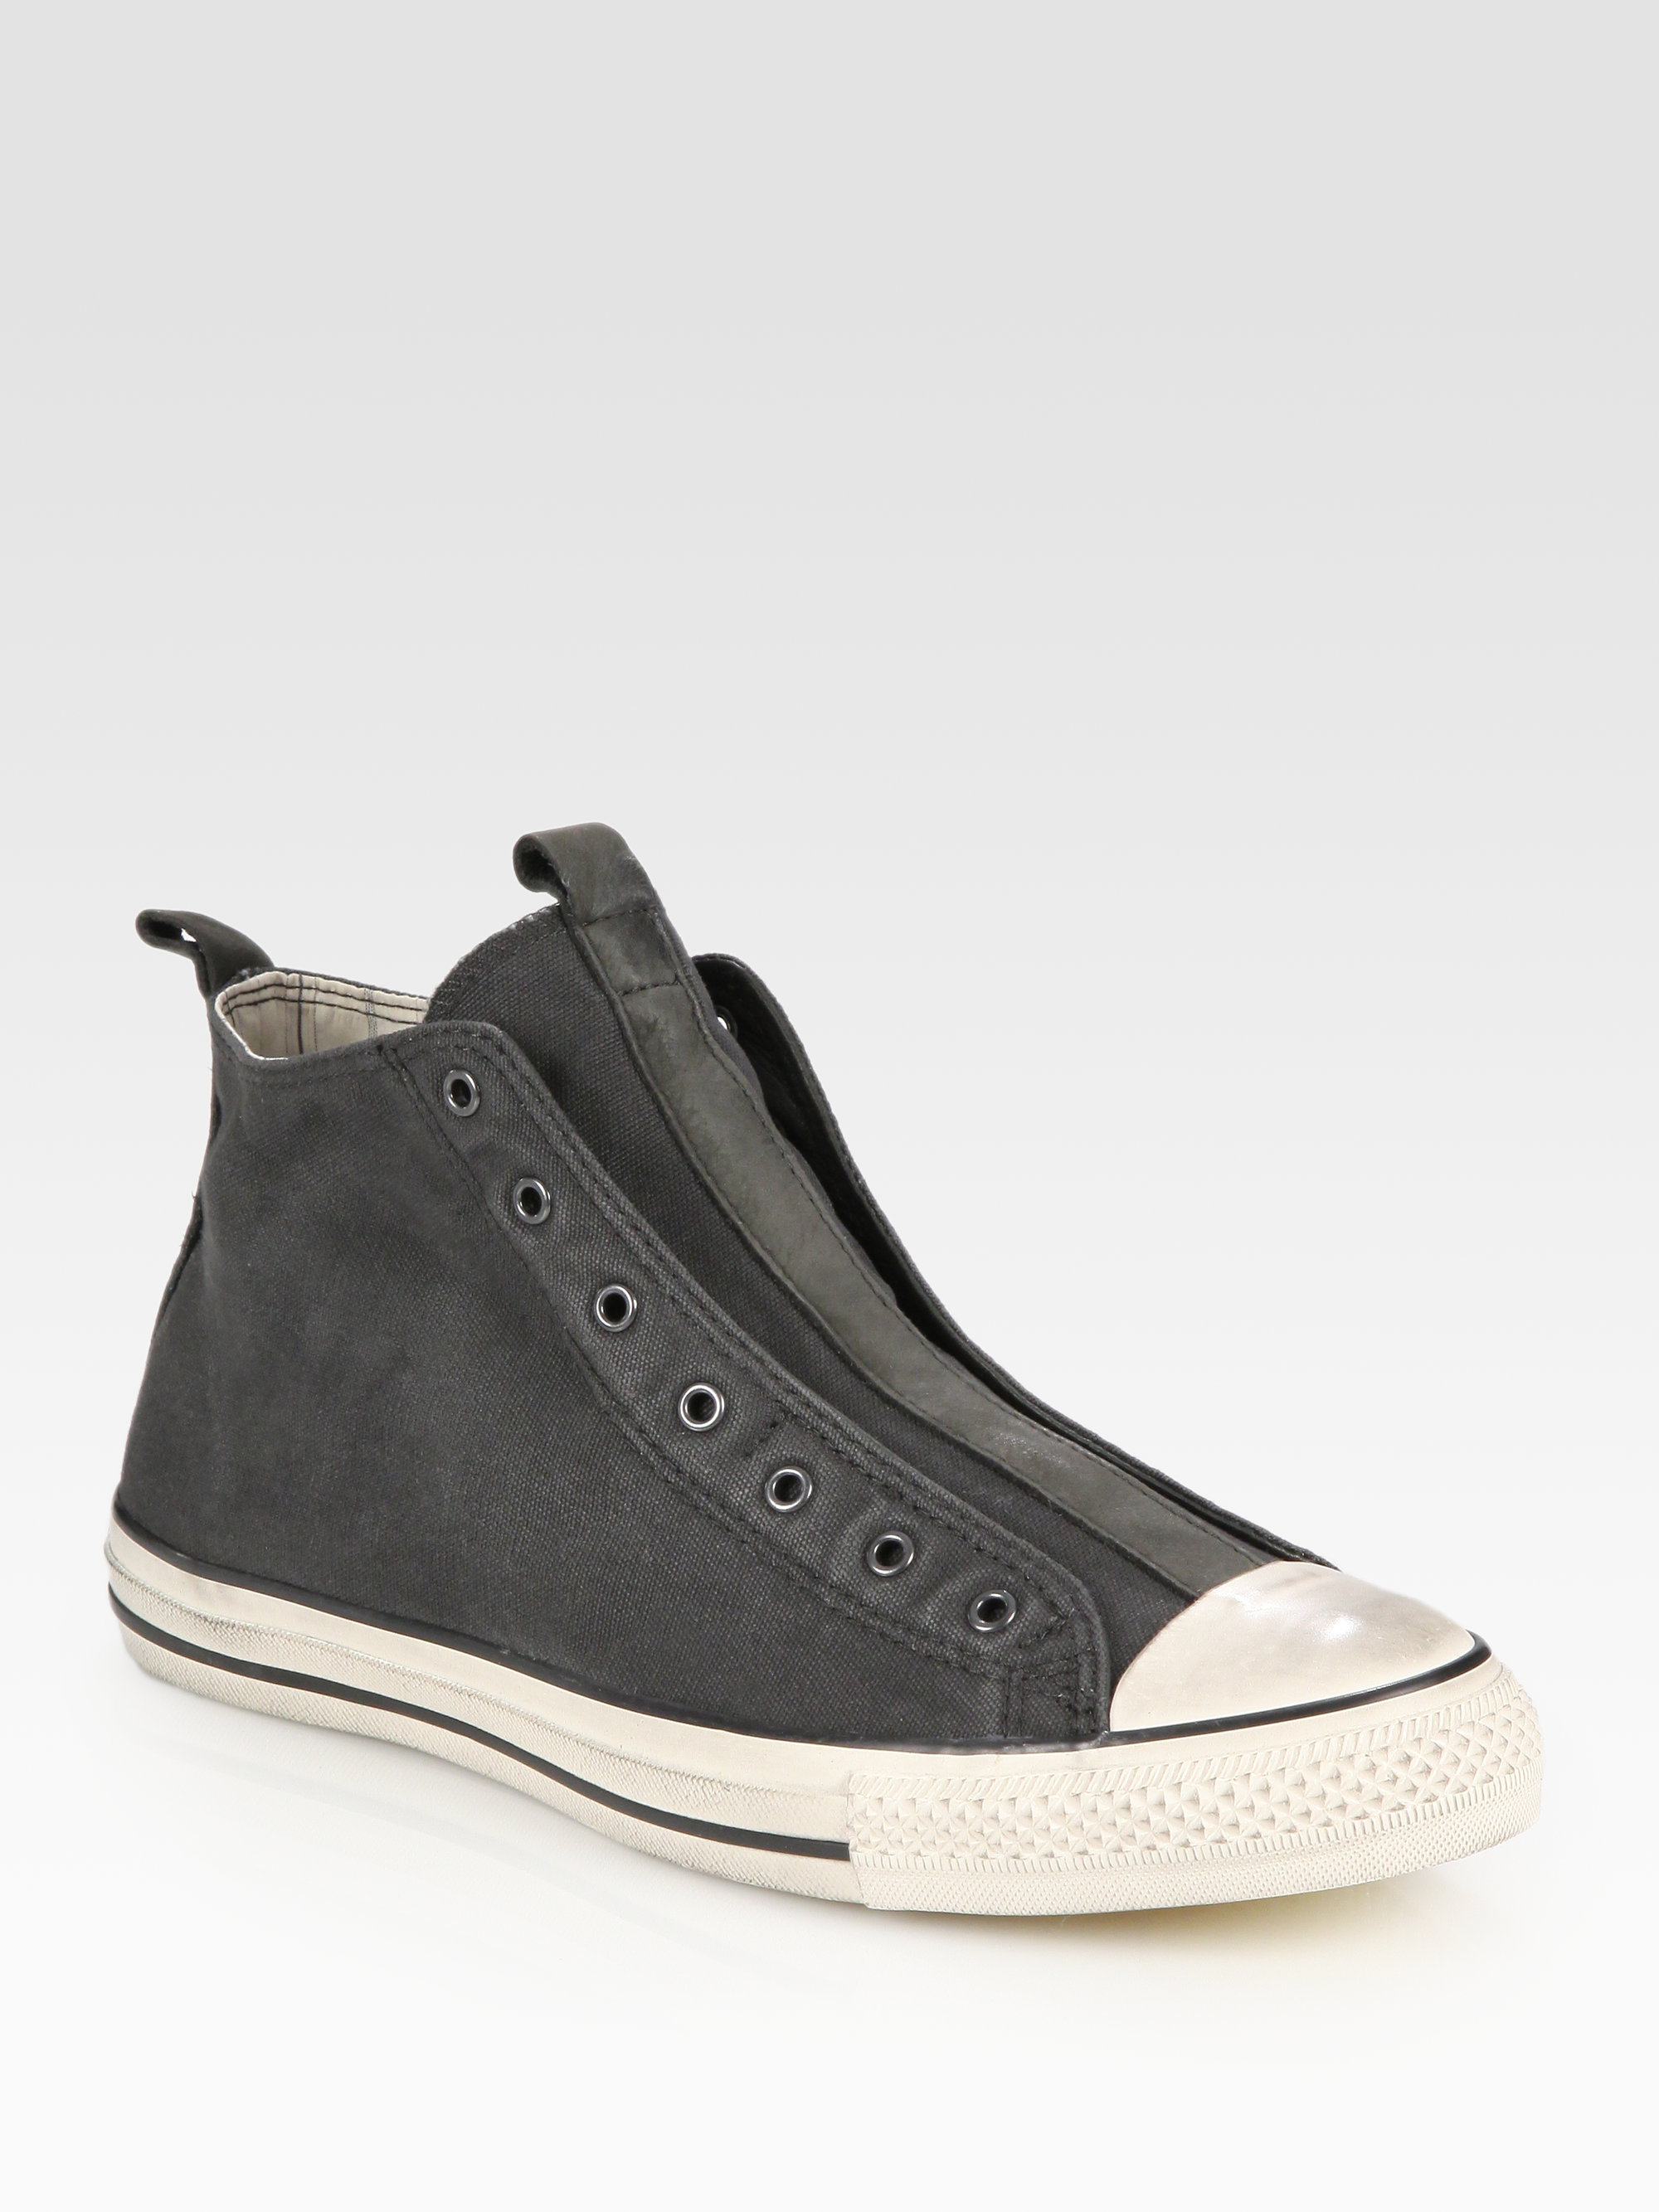 6f8ac62e7e2f ... italy lyst converse john varvatos laceless canvas hightop sneakers in  gray for men 1b1fd bd06a